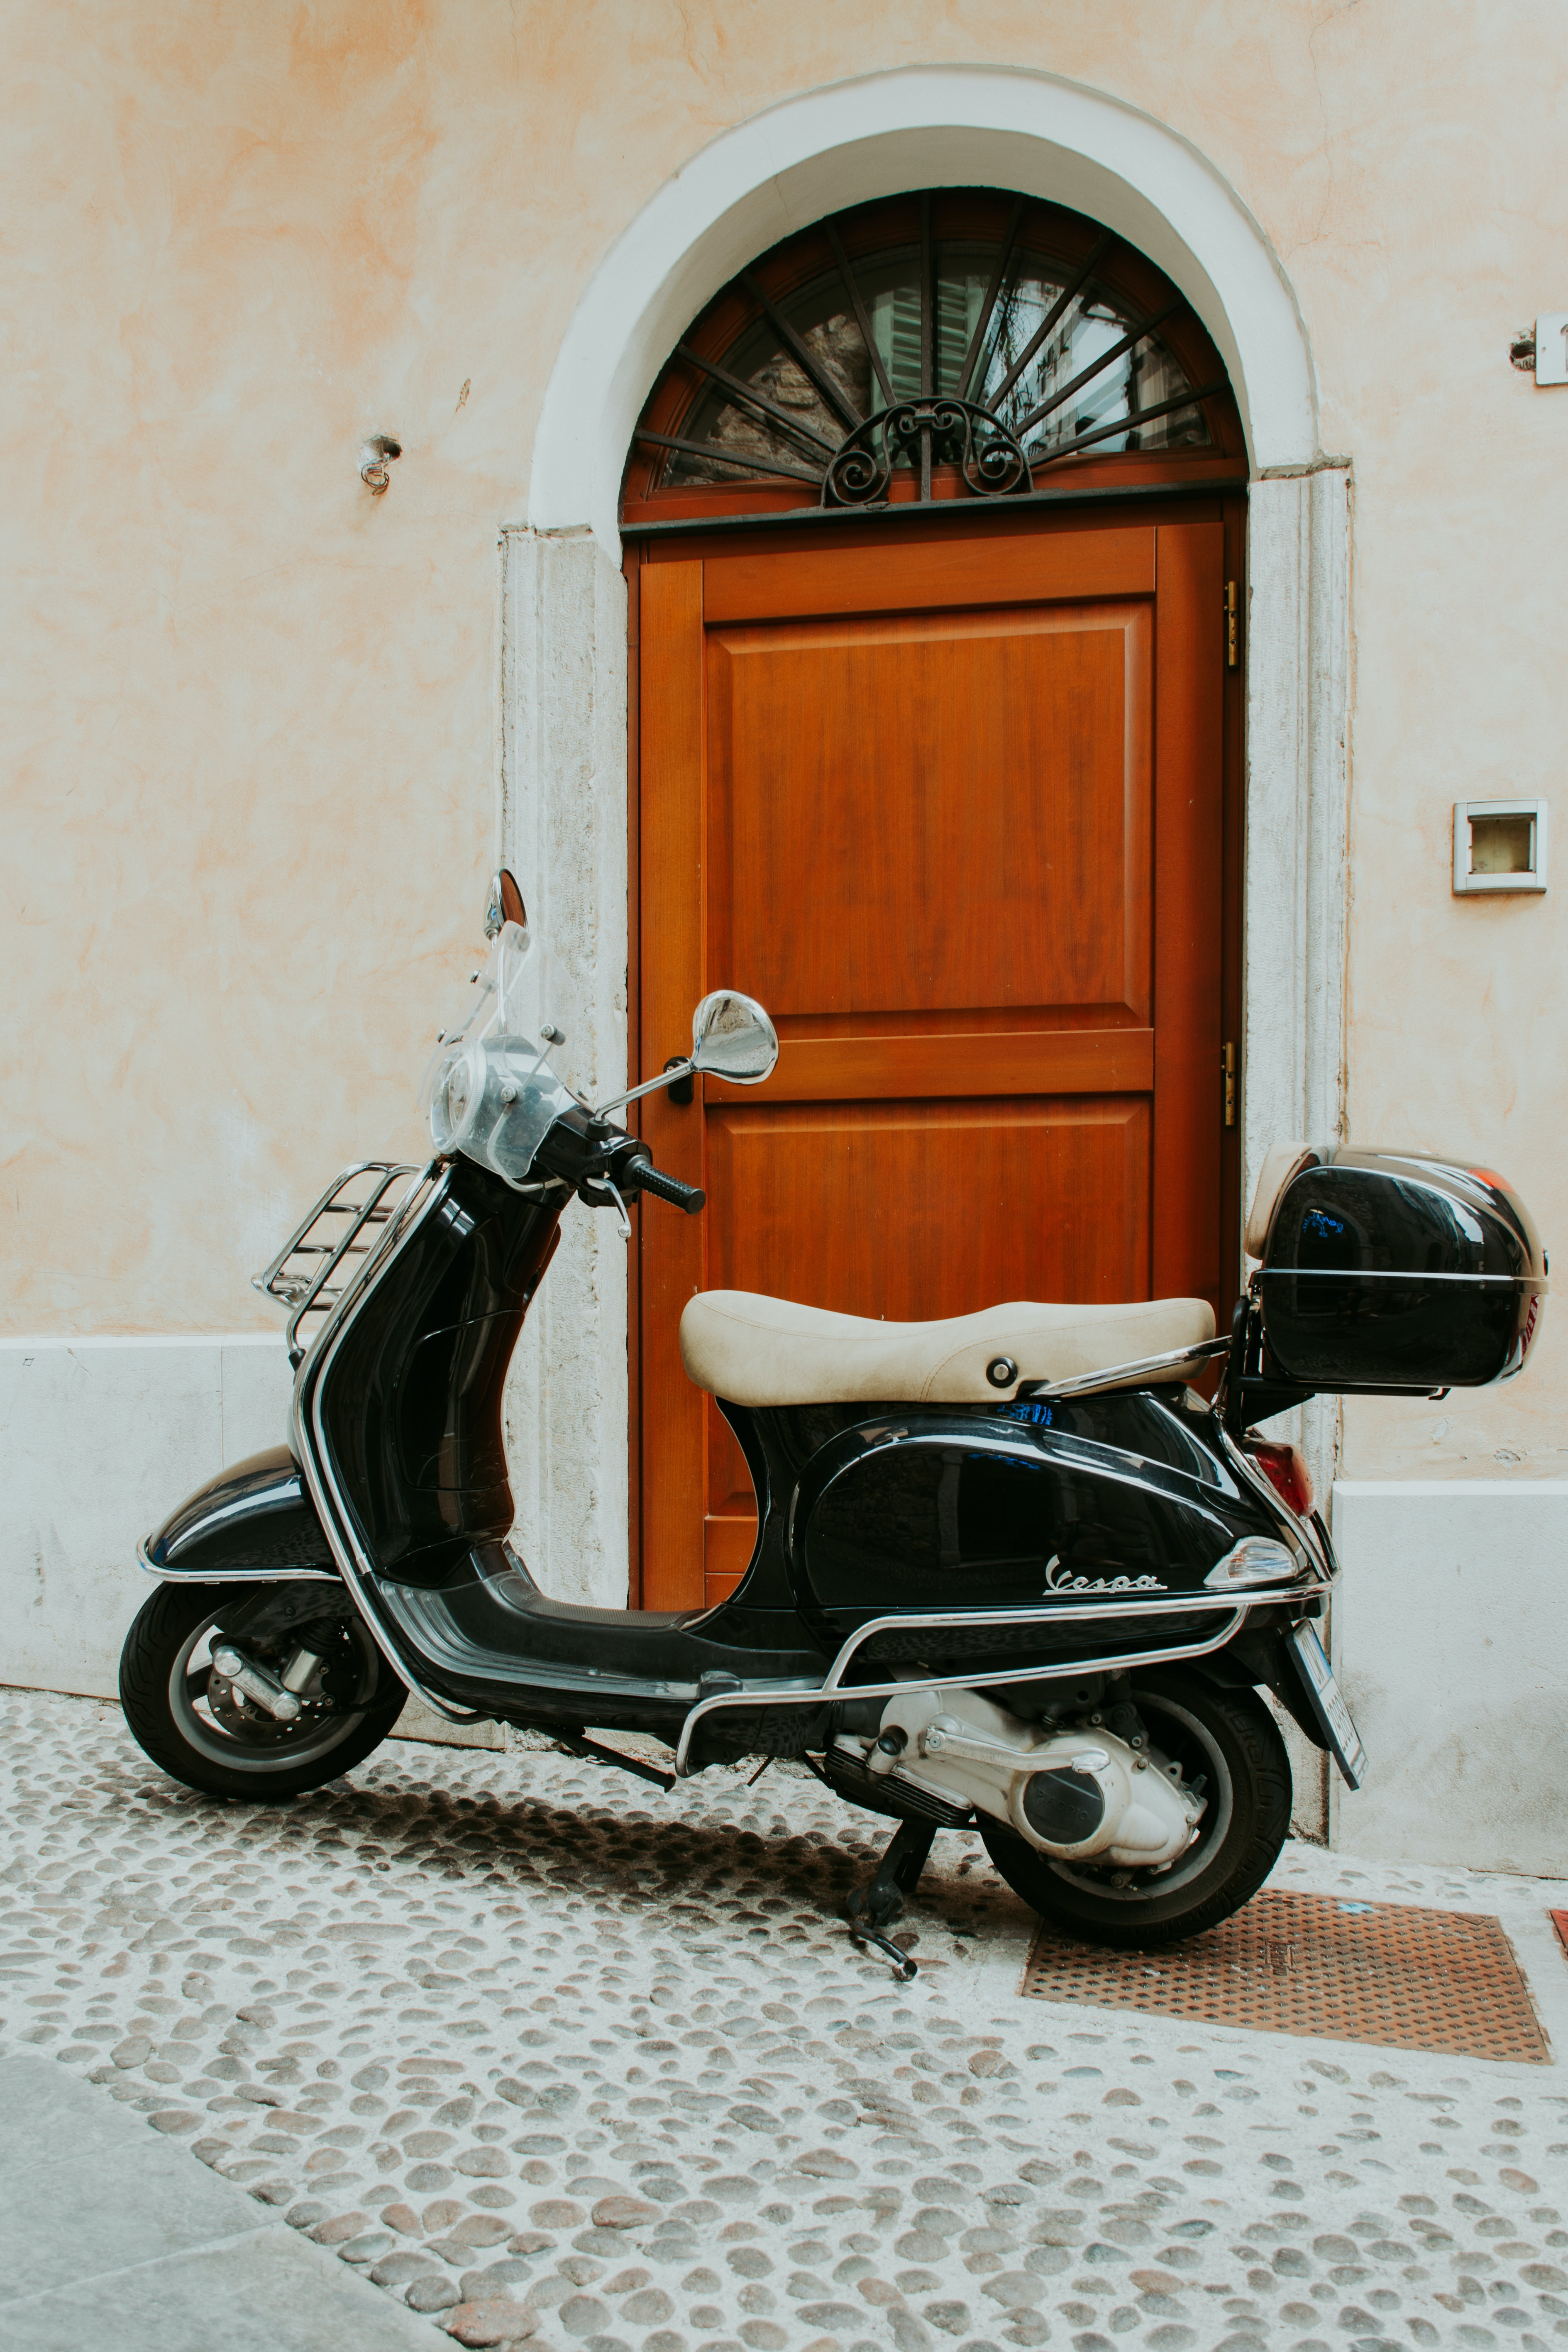 motor scooter parked near the door during day